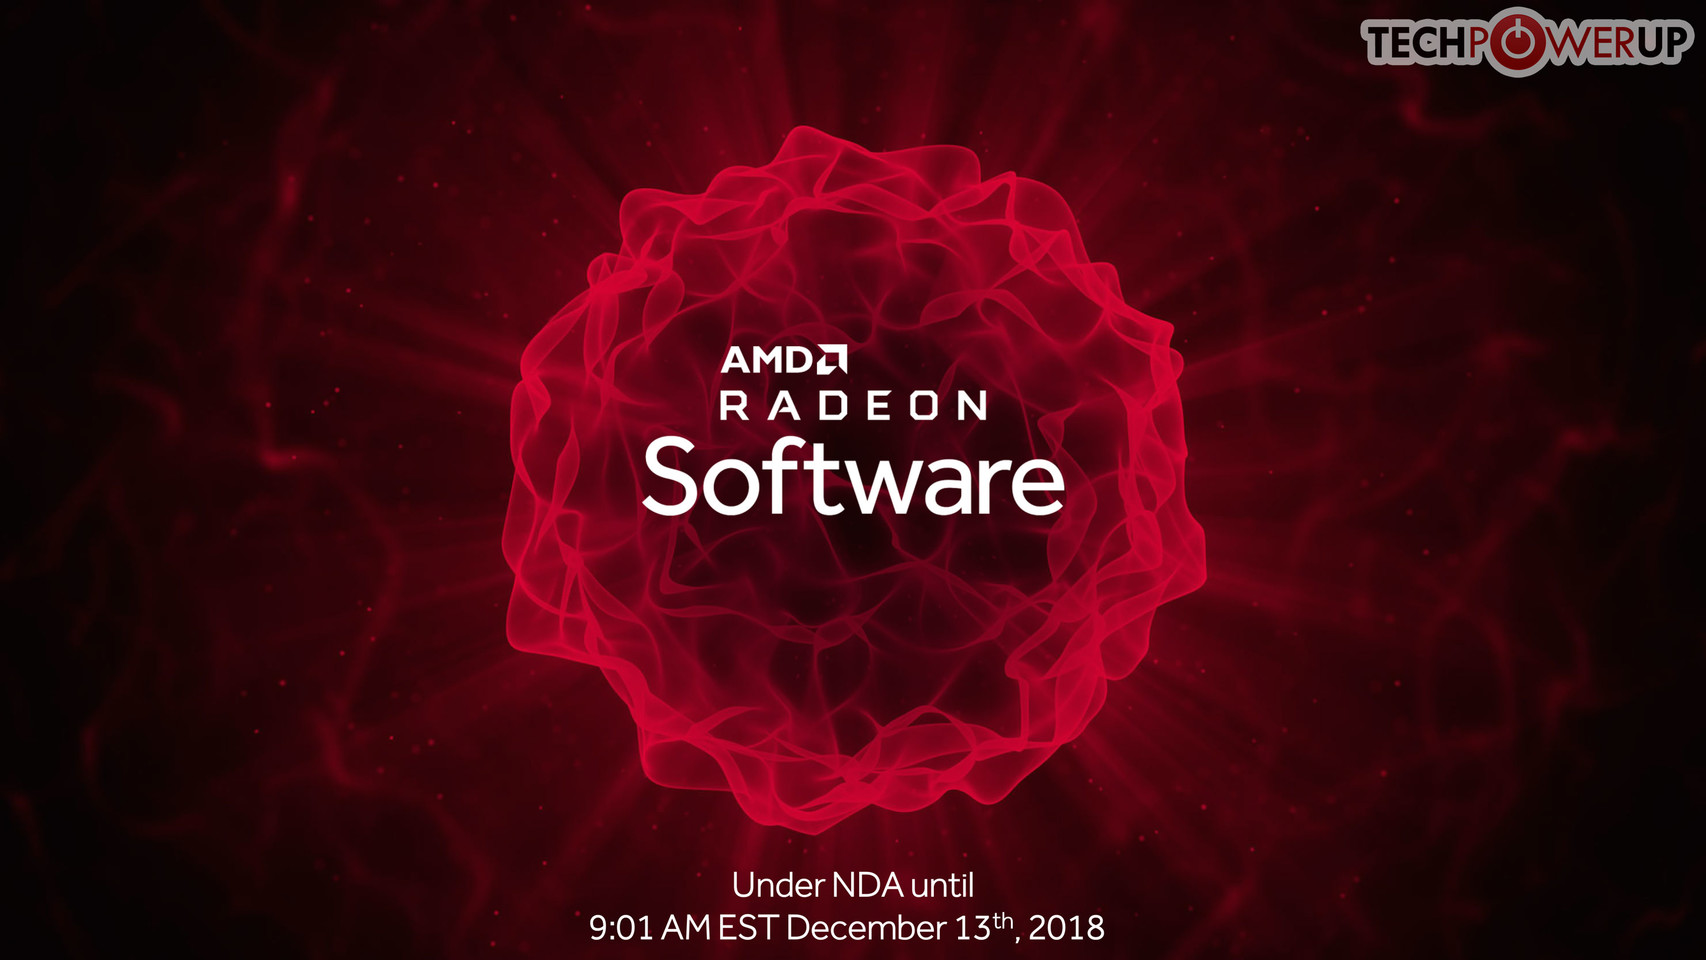 AMD Radeon Software Adrenalin 2019 Launched, Here's What's